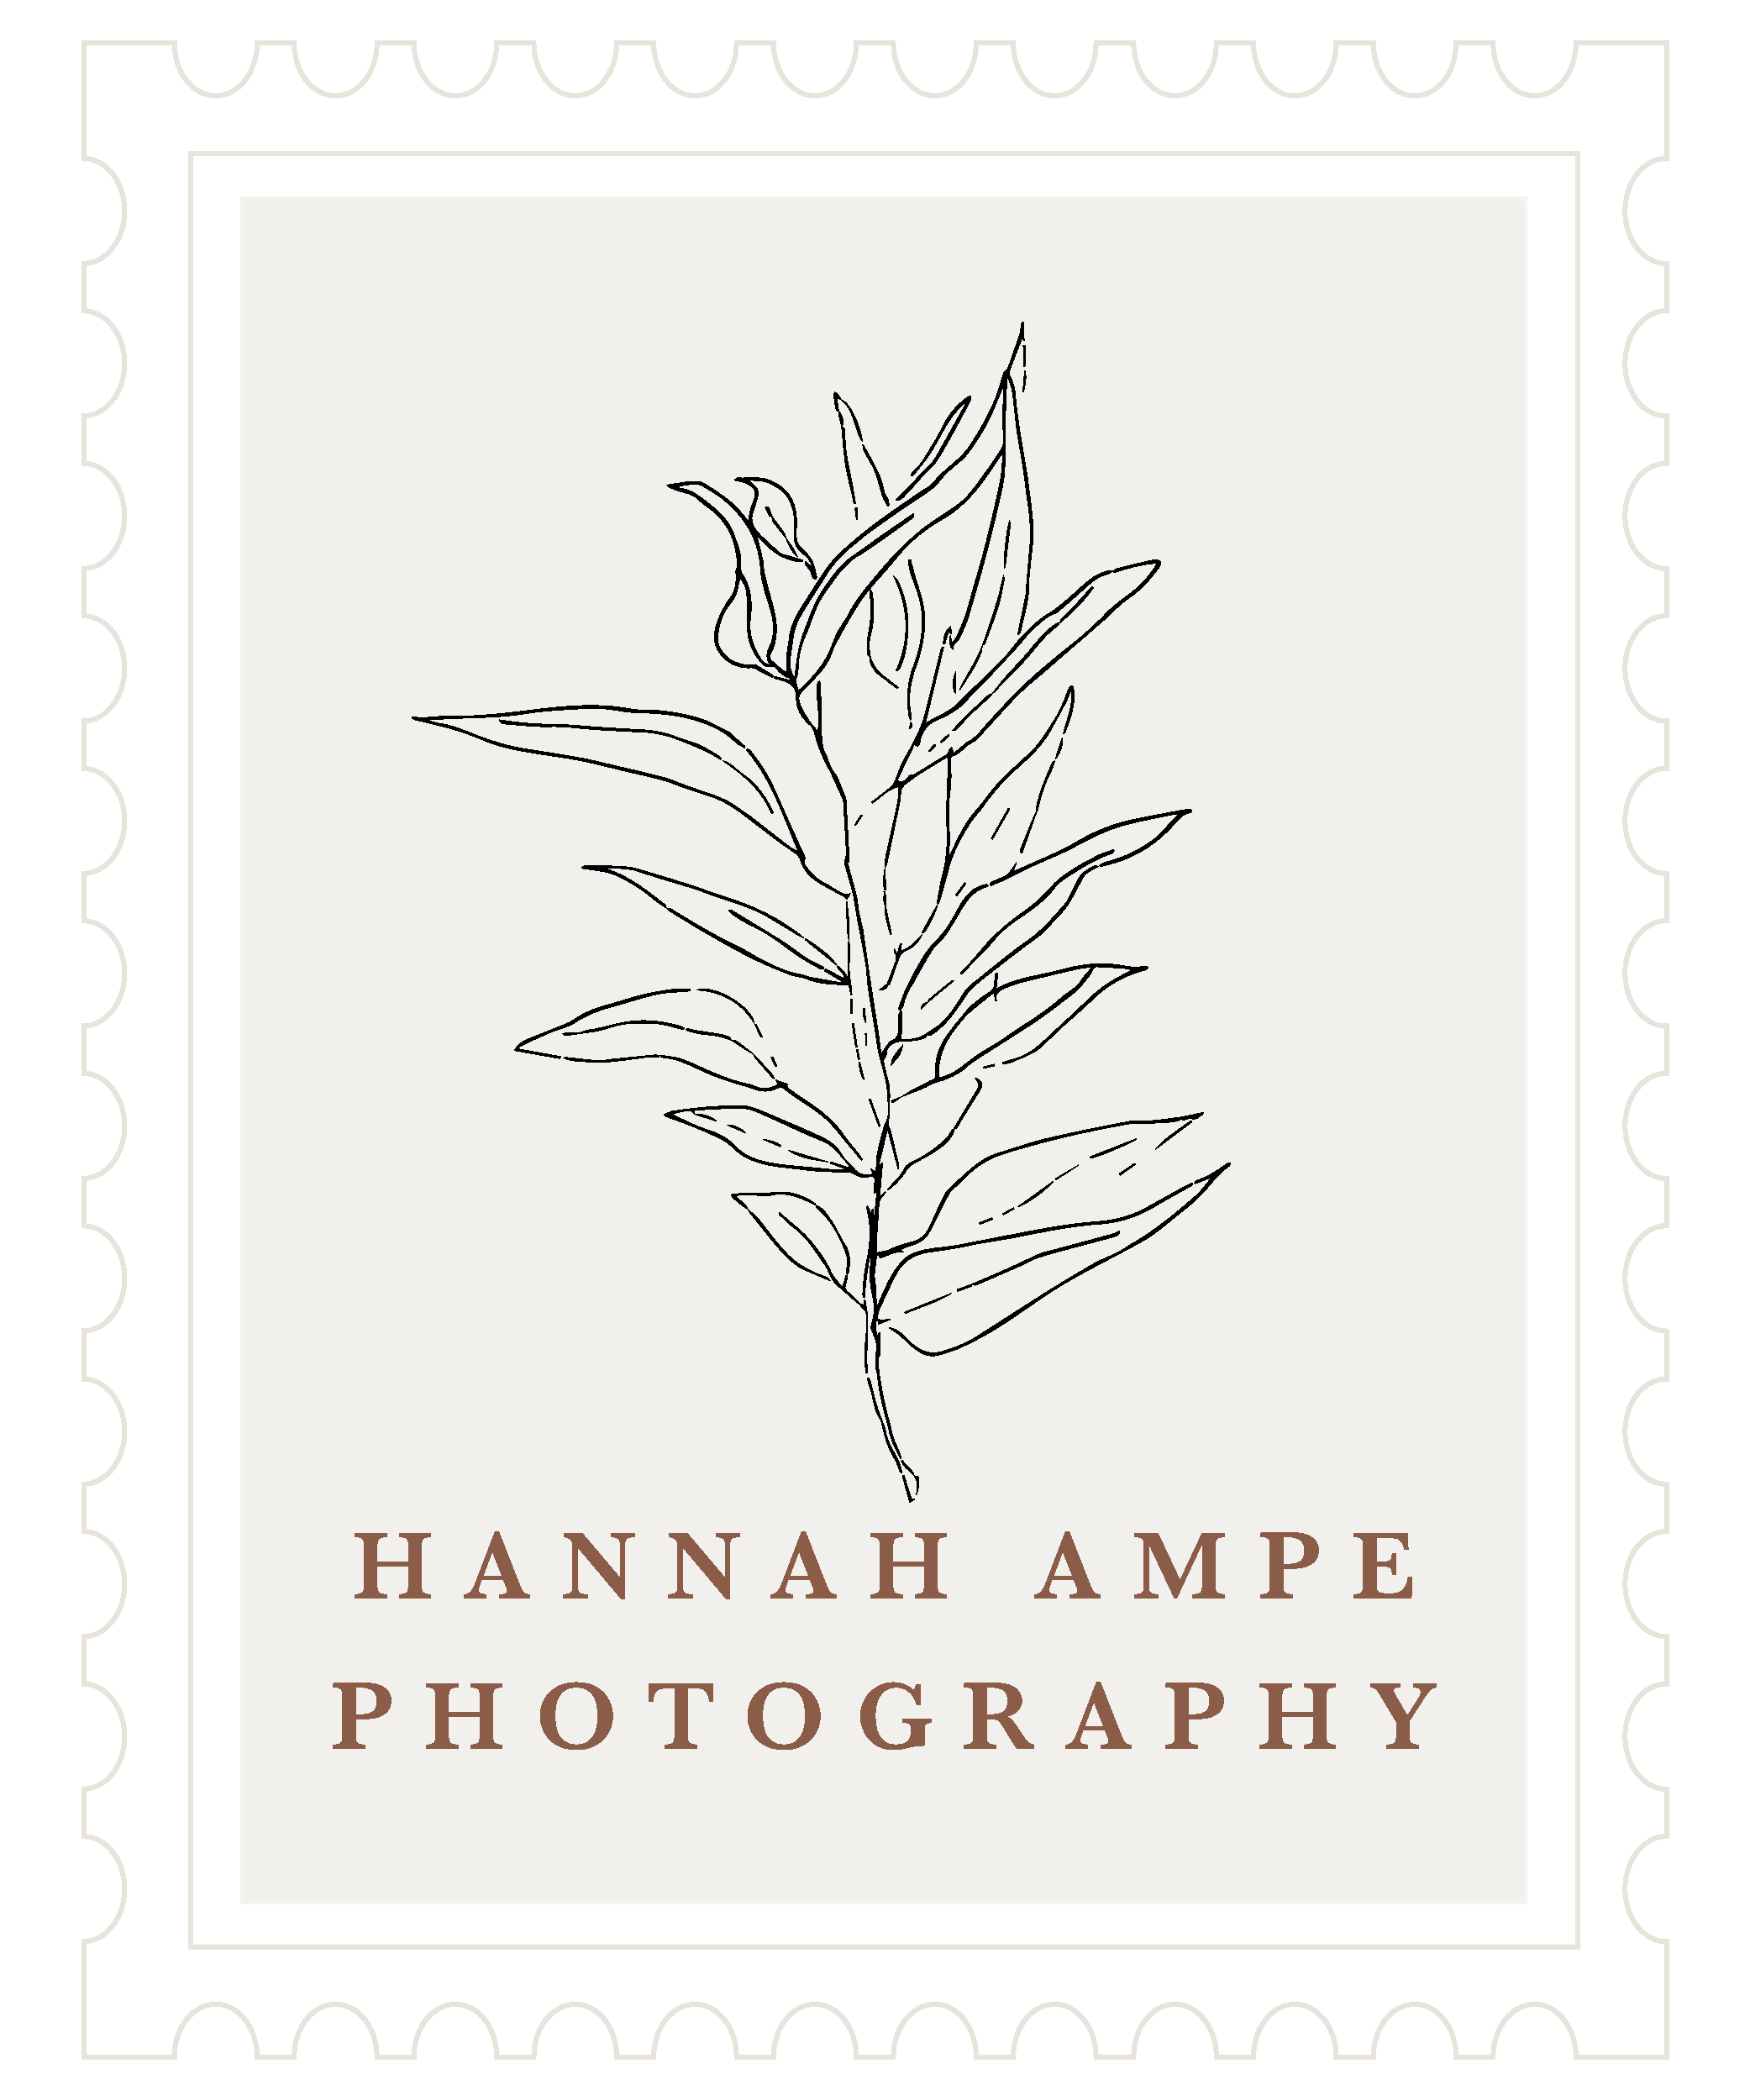 hannah ampe photography